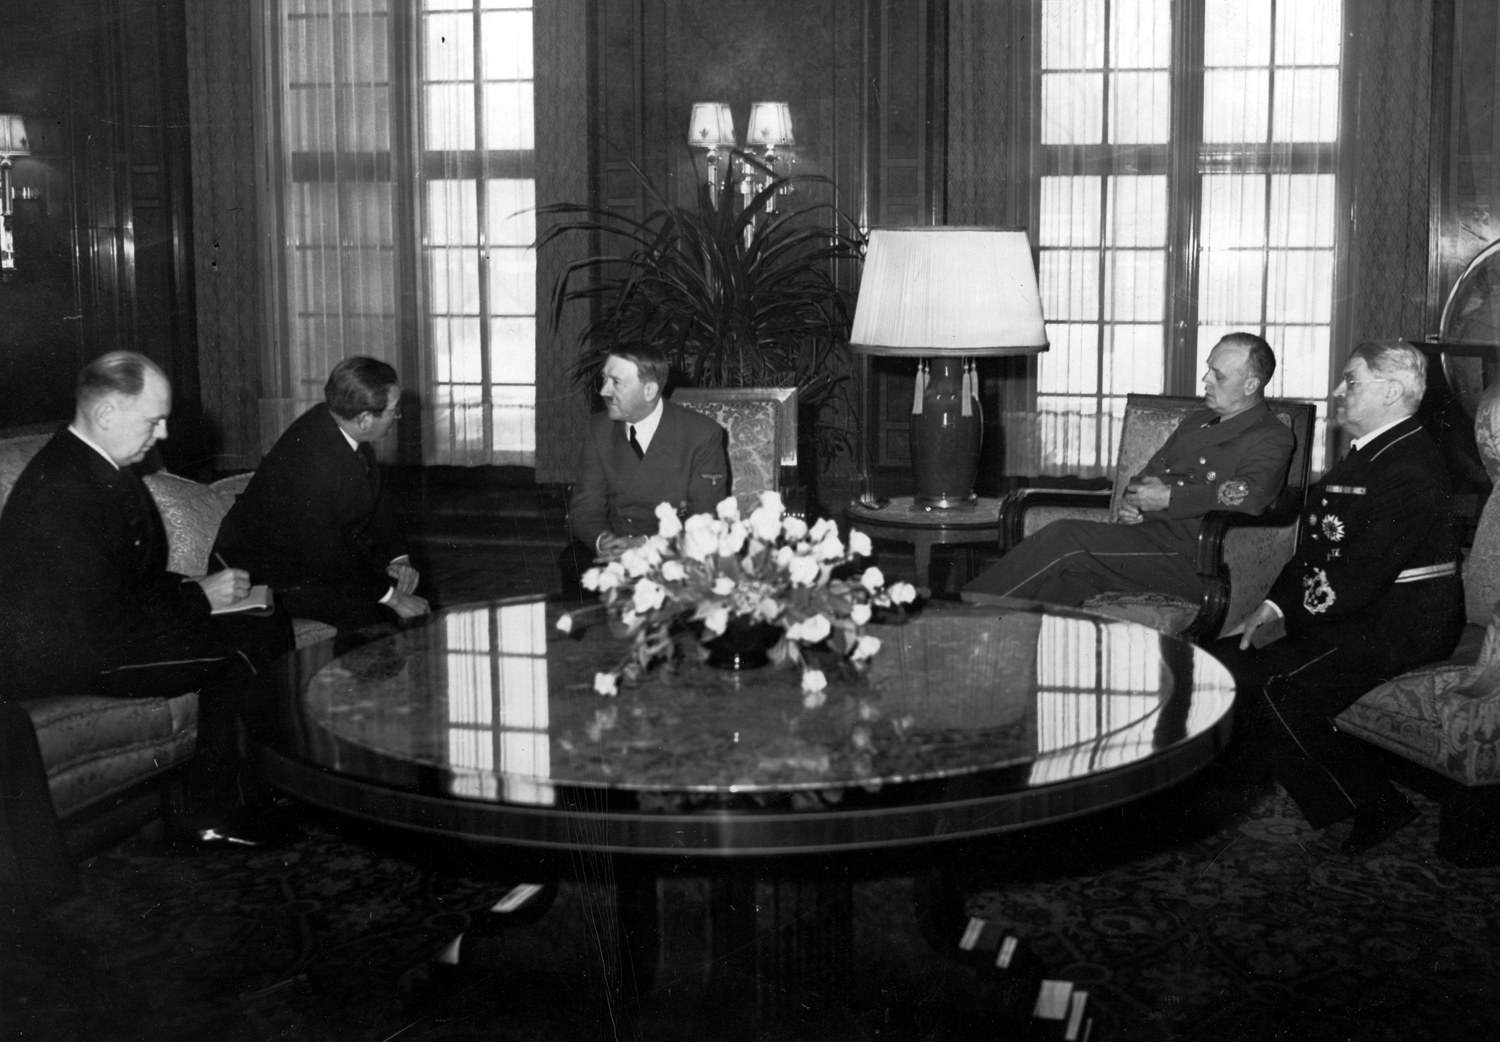 Adolf Hitler receives japanese ambassador Saburō Kurusu as he leaves his diplomatic position in Berlin